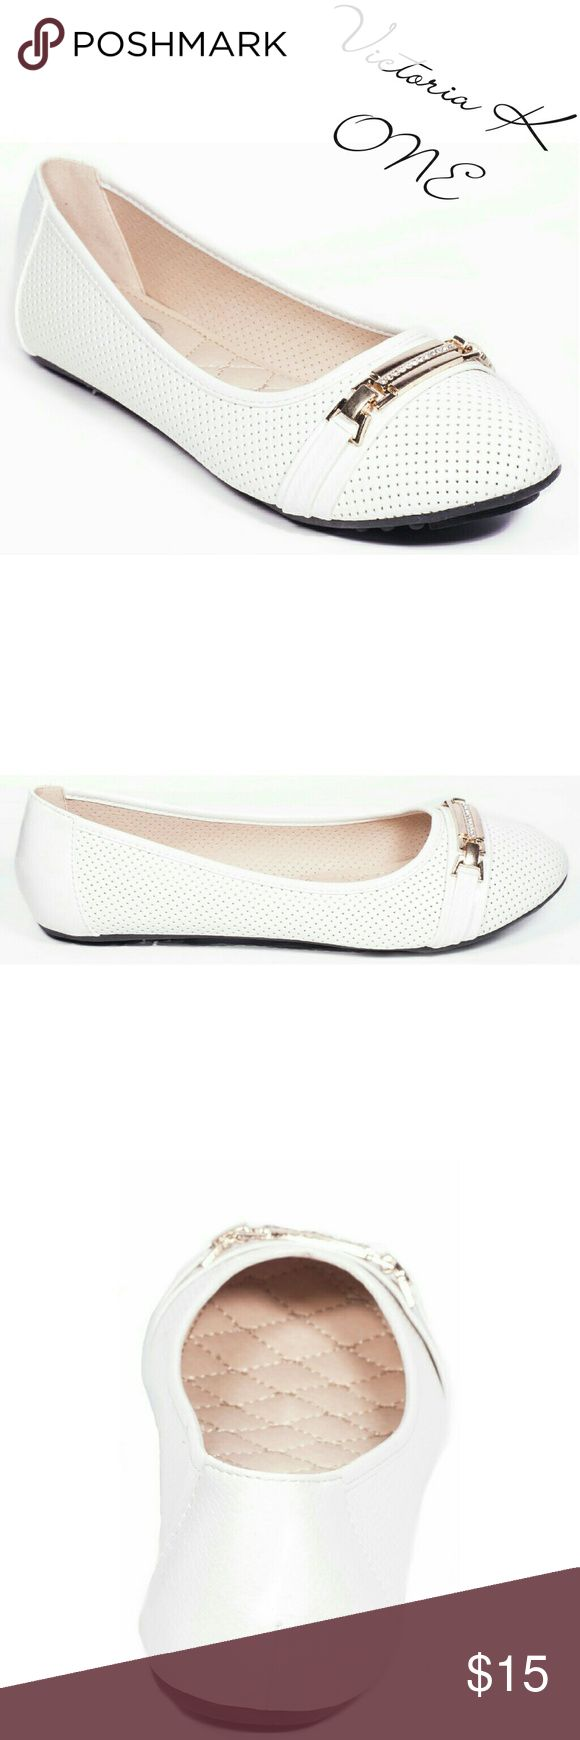 """Women Bracelet Buckle Flats, b-2065, White Brand new Victoria K perforated ballerina flats in PU leather with a stylish stone-studded buckle in the front. From the ONE collection. Soft cushioned sole, very comfortable. Bubbled bottom sole for extra traction. A true statement in ladies shoes fashion! Measurements: larger sizes run small. Size 8 measures 9.5 inches, sz 8.5 - 9 3/4"""", sz 9 - 10"""", sz 9.5 - 10 1/4"""", sz 10 - 10.5"""", all half sizes are in 1/4 inch increments of each other. Tory K…"""